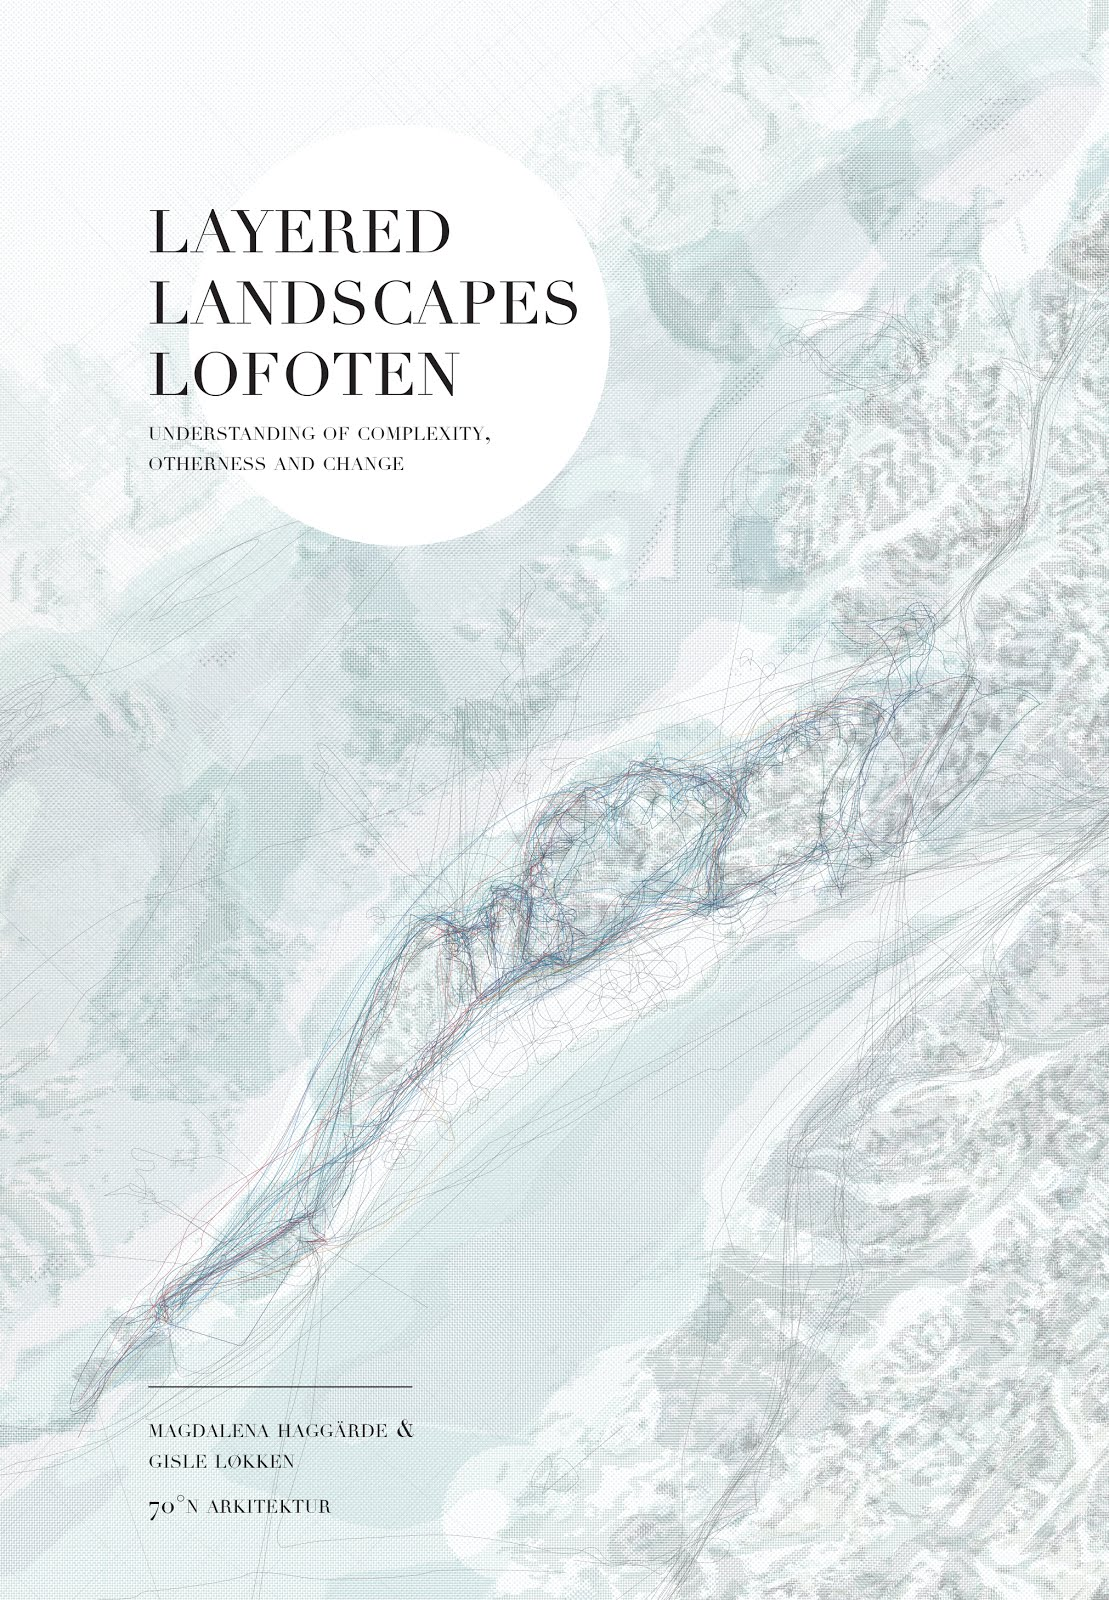 <i>Layered Landscapes Lofoten - understanding of complexity, otherness and change</i>